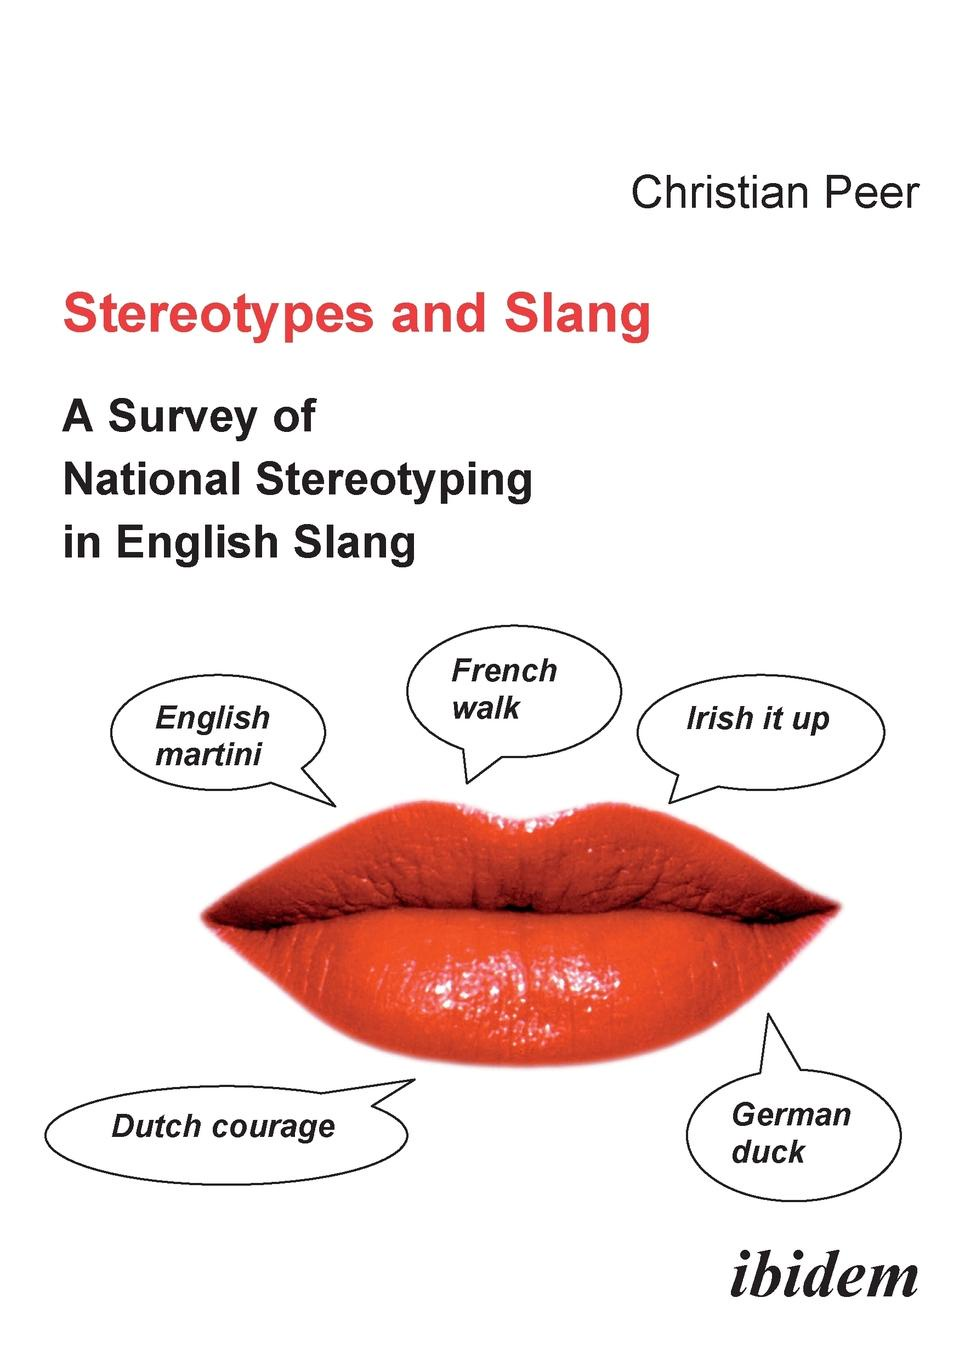 Christian Peer Stereotypes and Slang. A Survey of National Stereotyping in English Slang